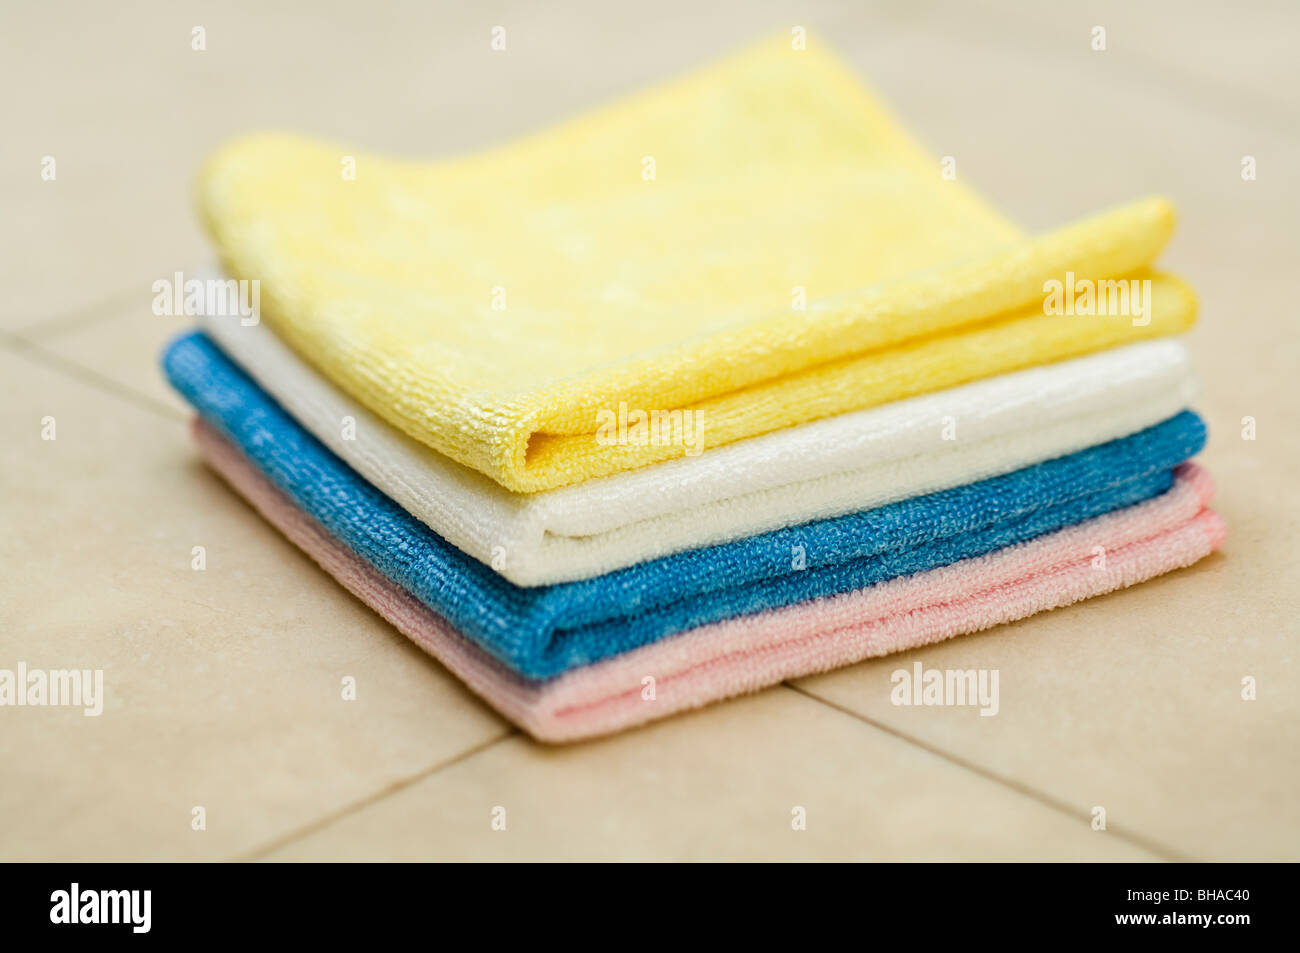 Small pile of cleaning cloths. - Stock Image